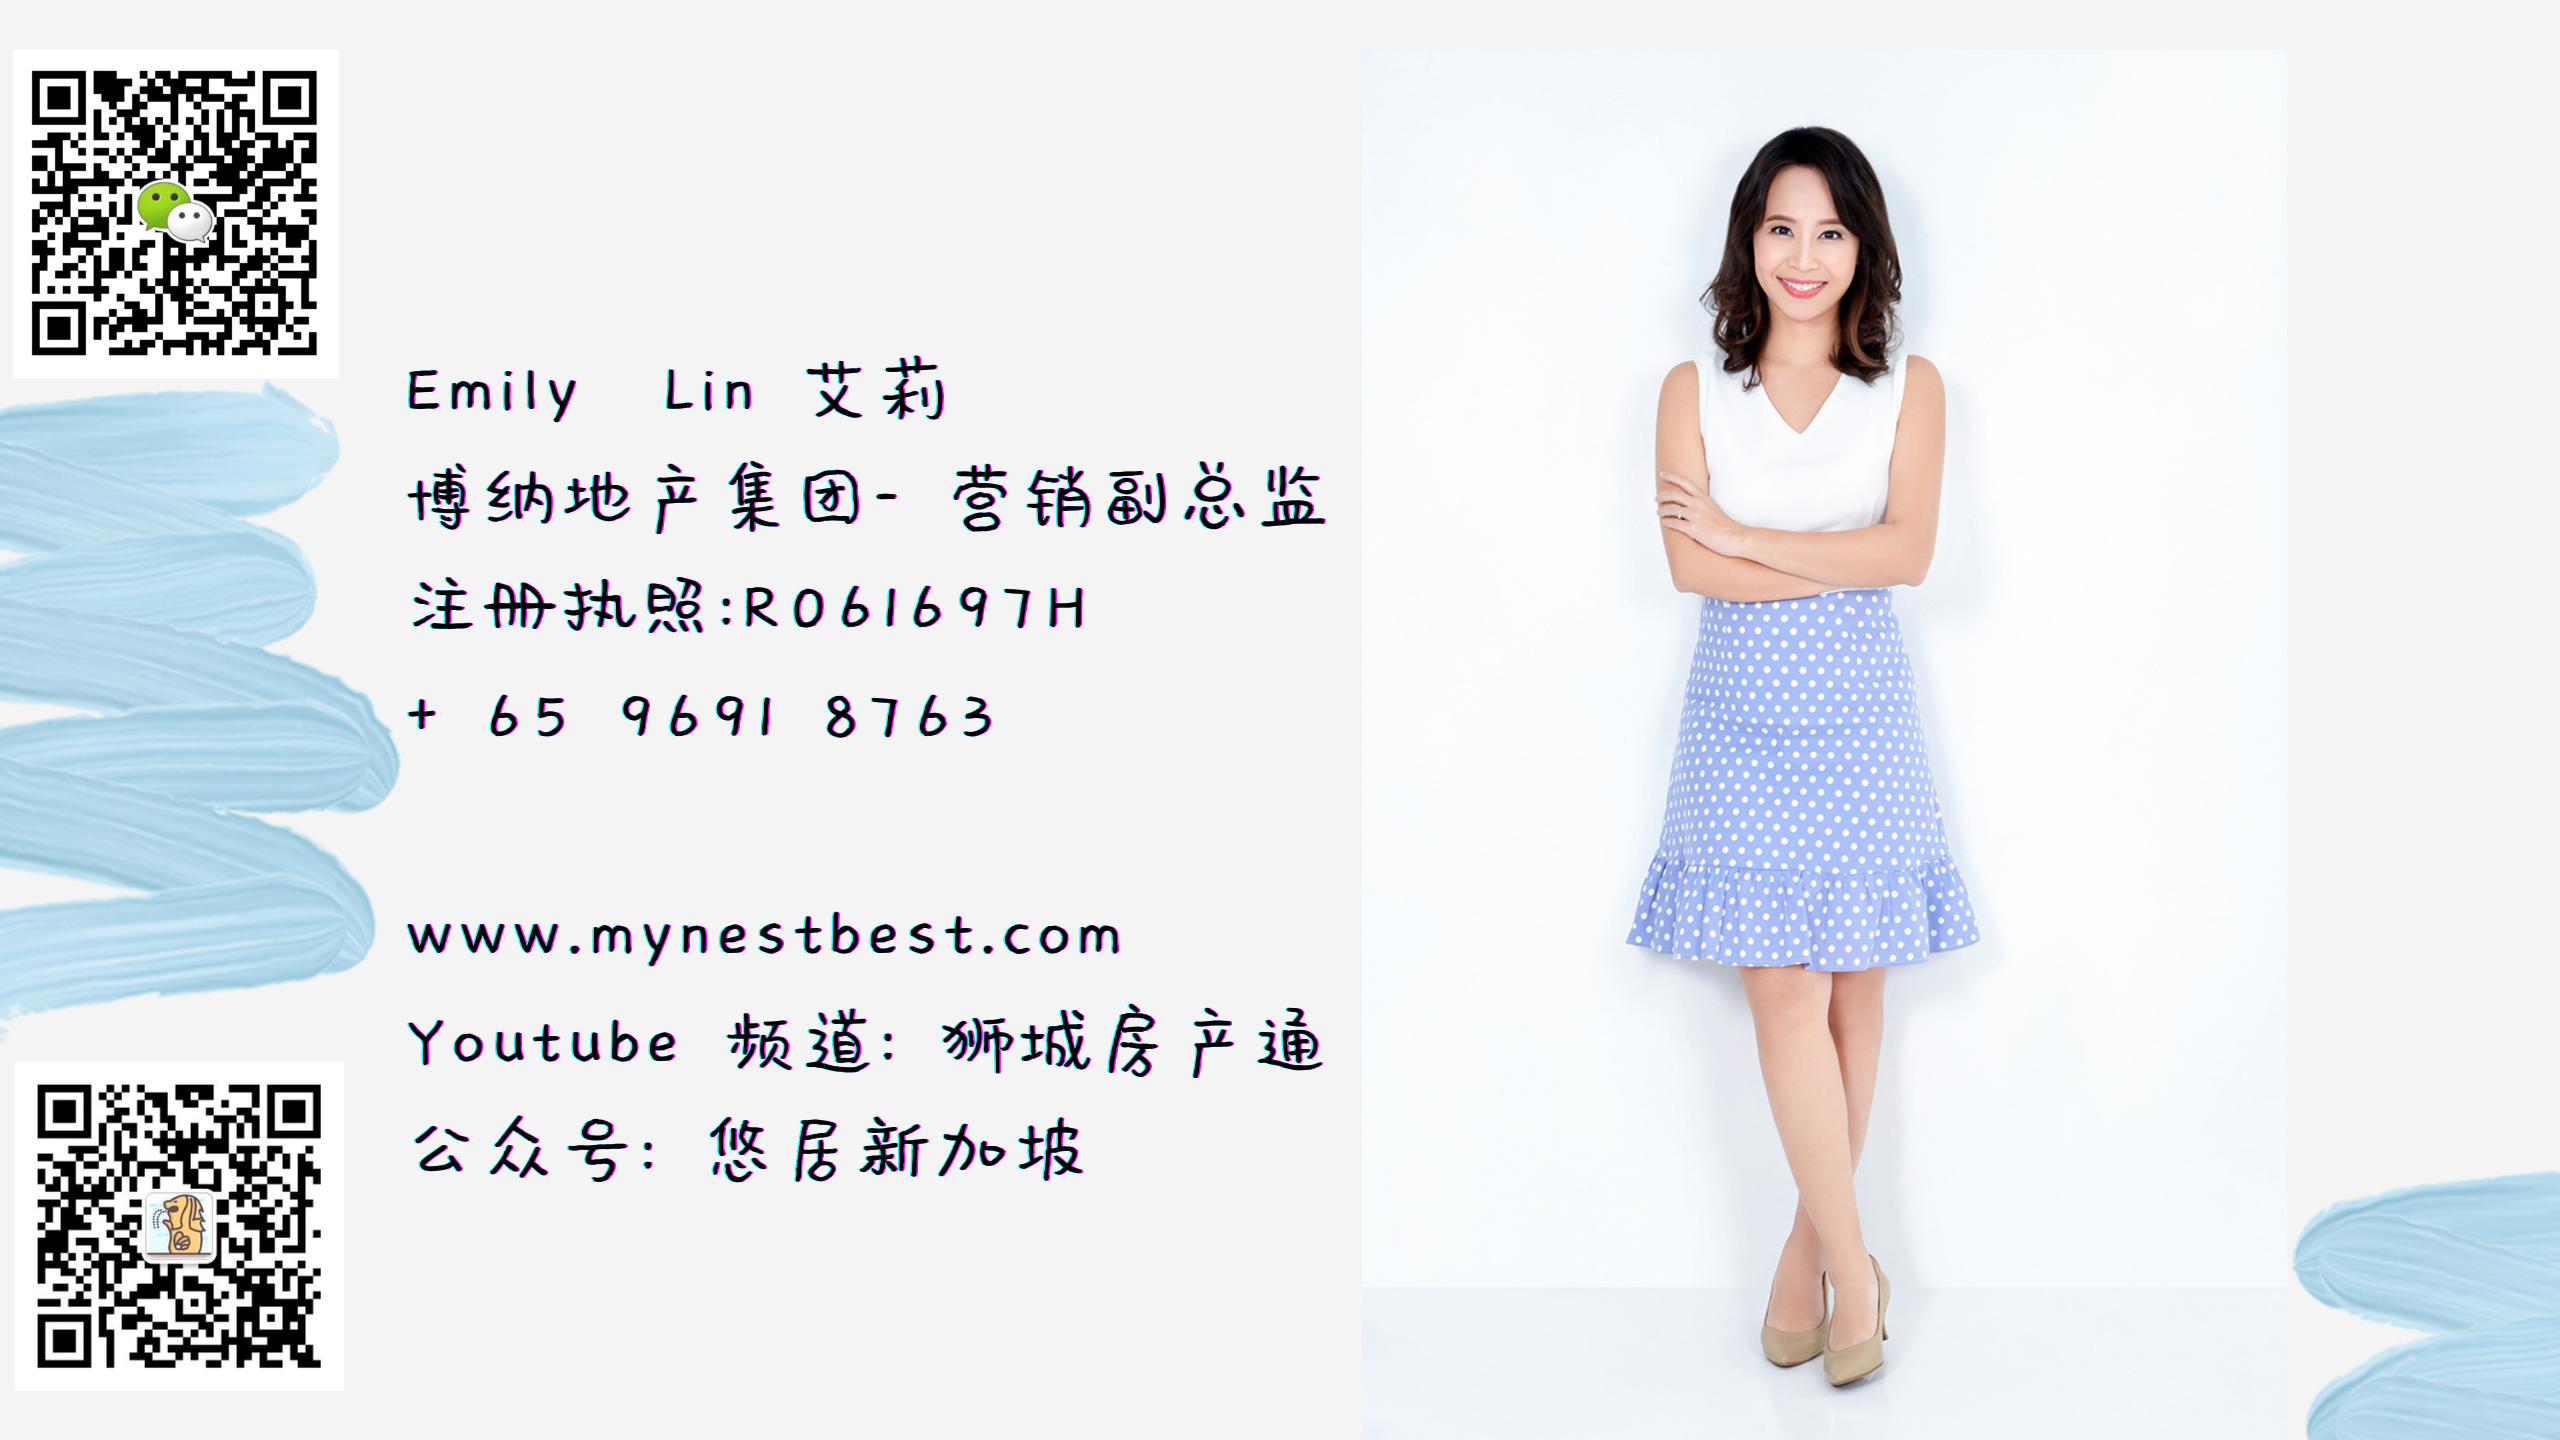 Profile with Wechat QR code.png